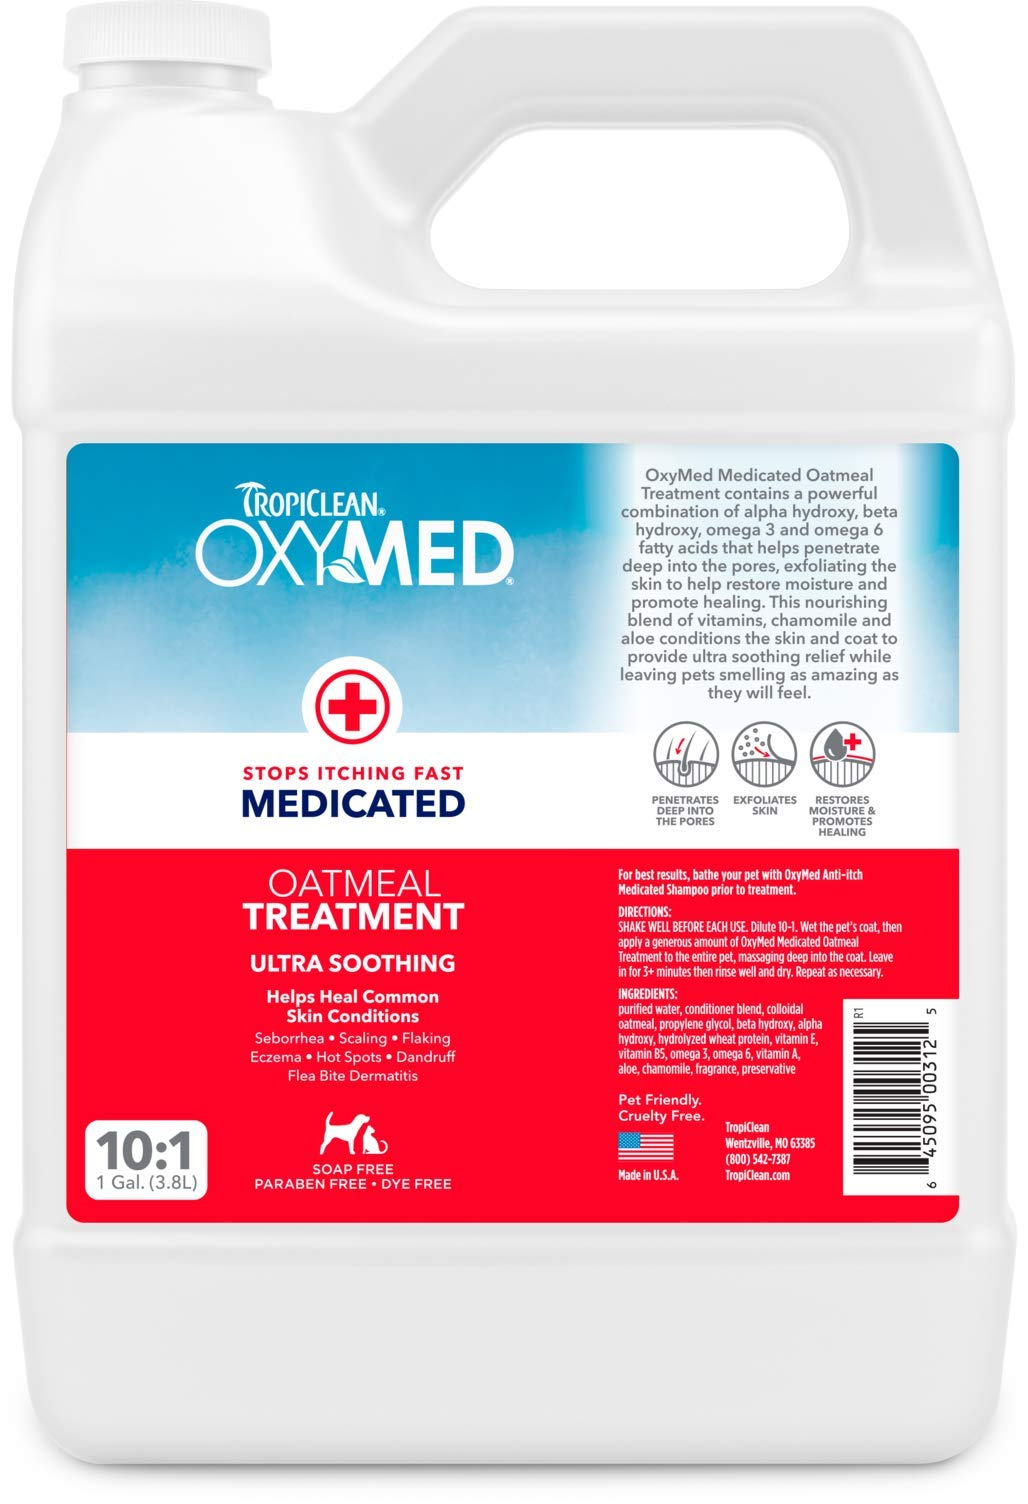 TropiClean OXYMED Medicated Treatment for Pets, 1 Gallon